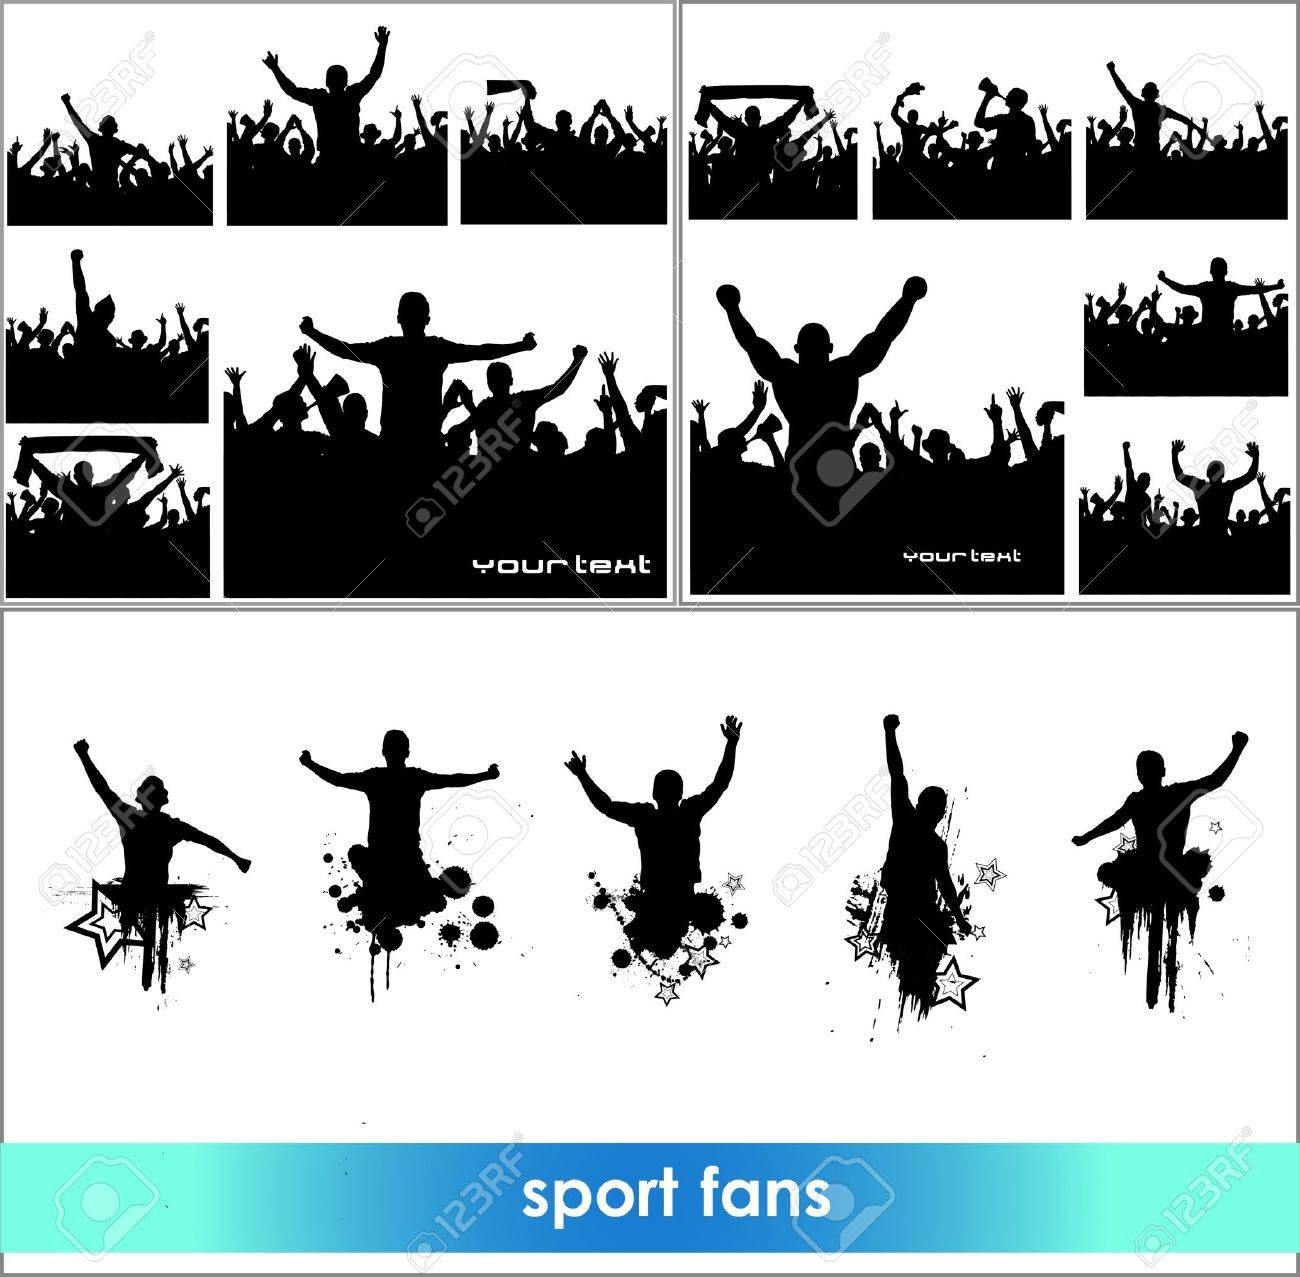 Advertising banners for sports championships and concerts Stock Vector - 18419621